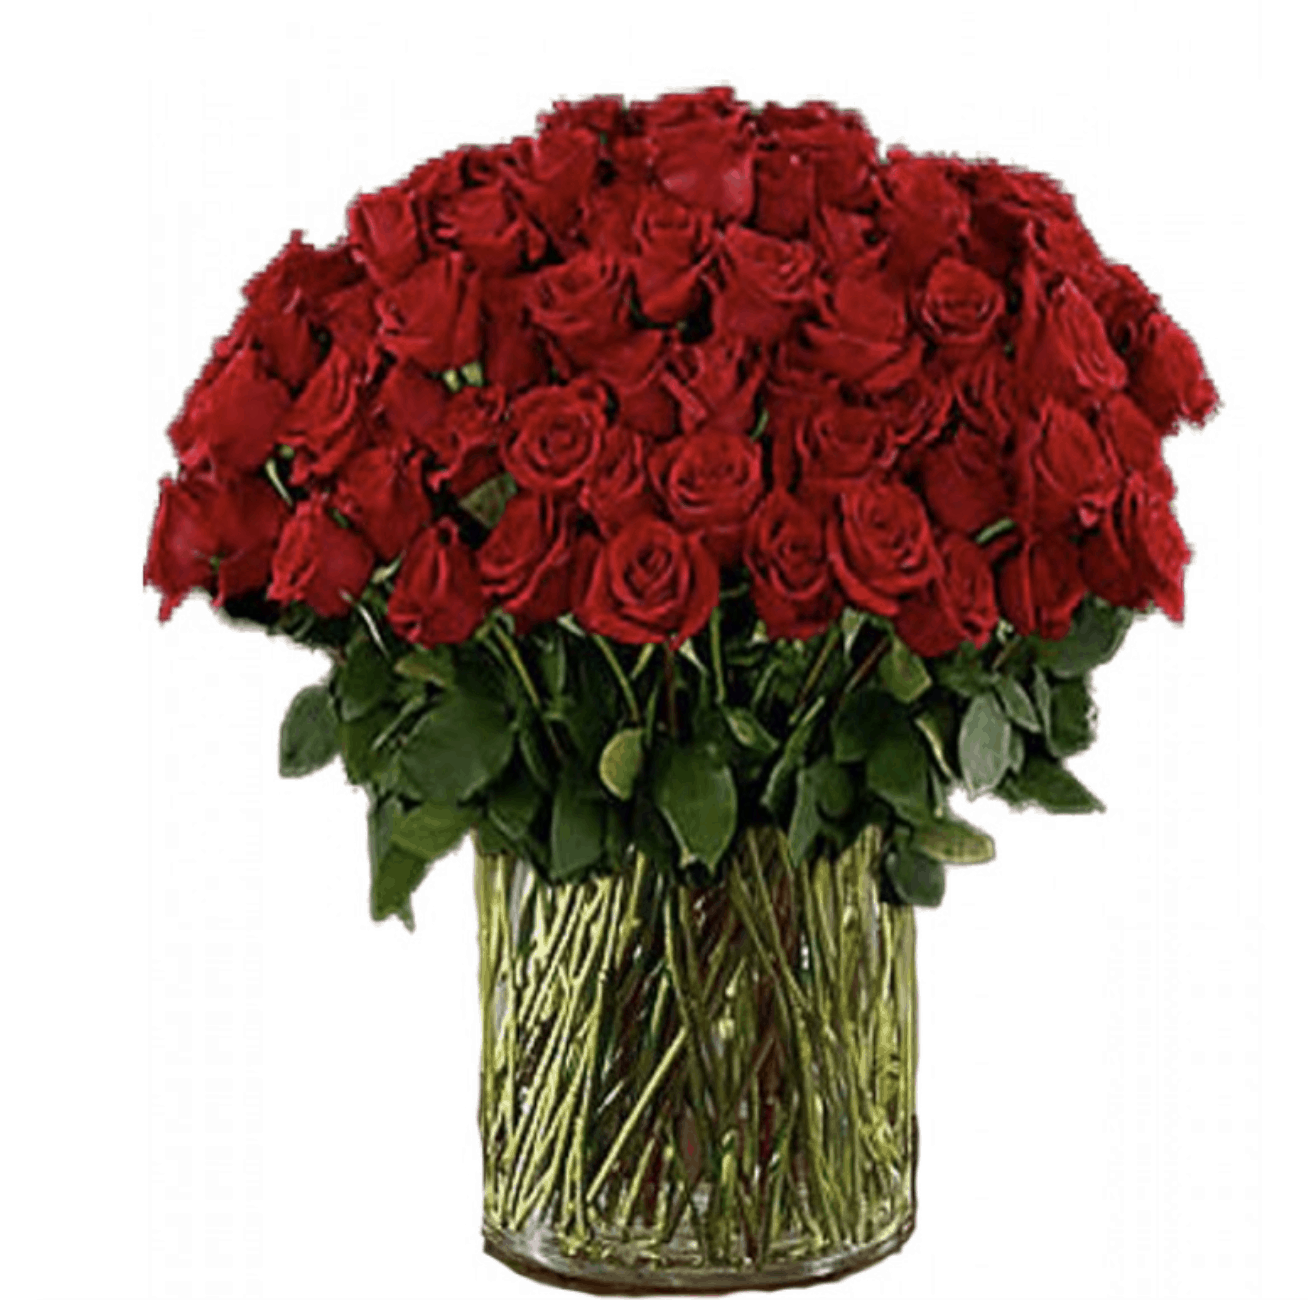 Wow Your Valentine with Roses This Valentine's Day